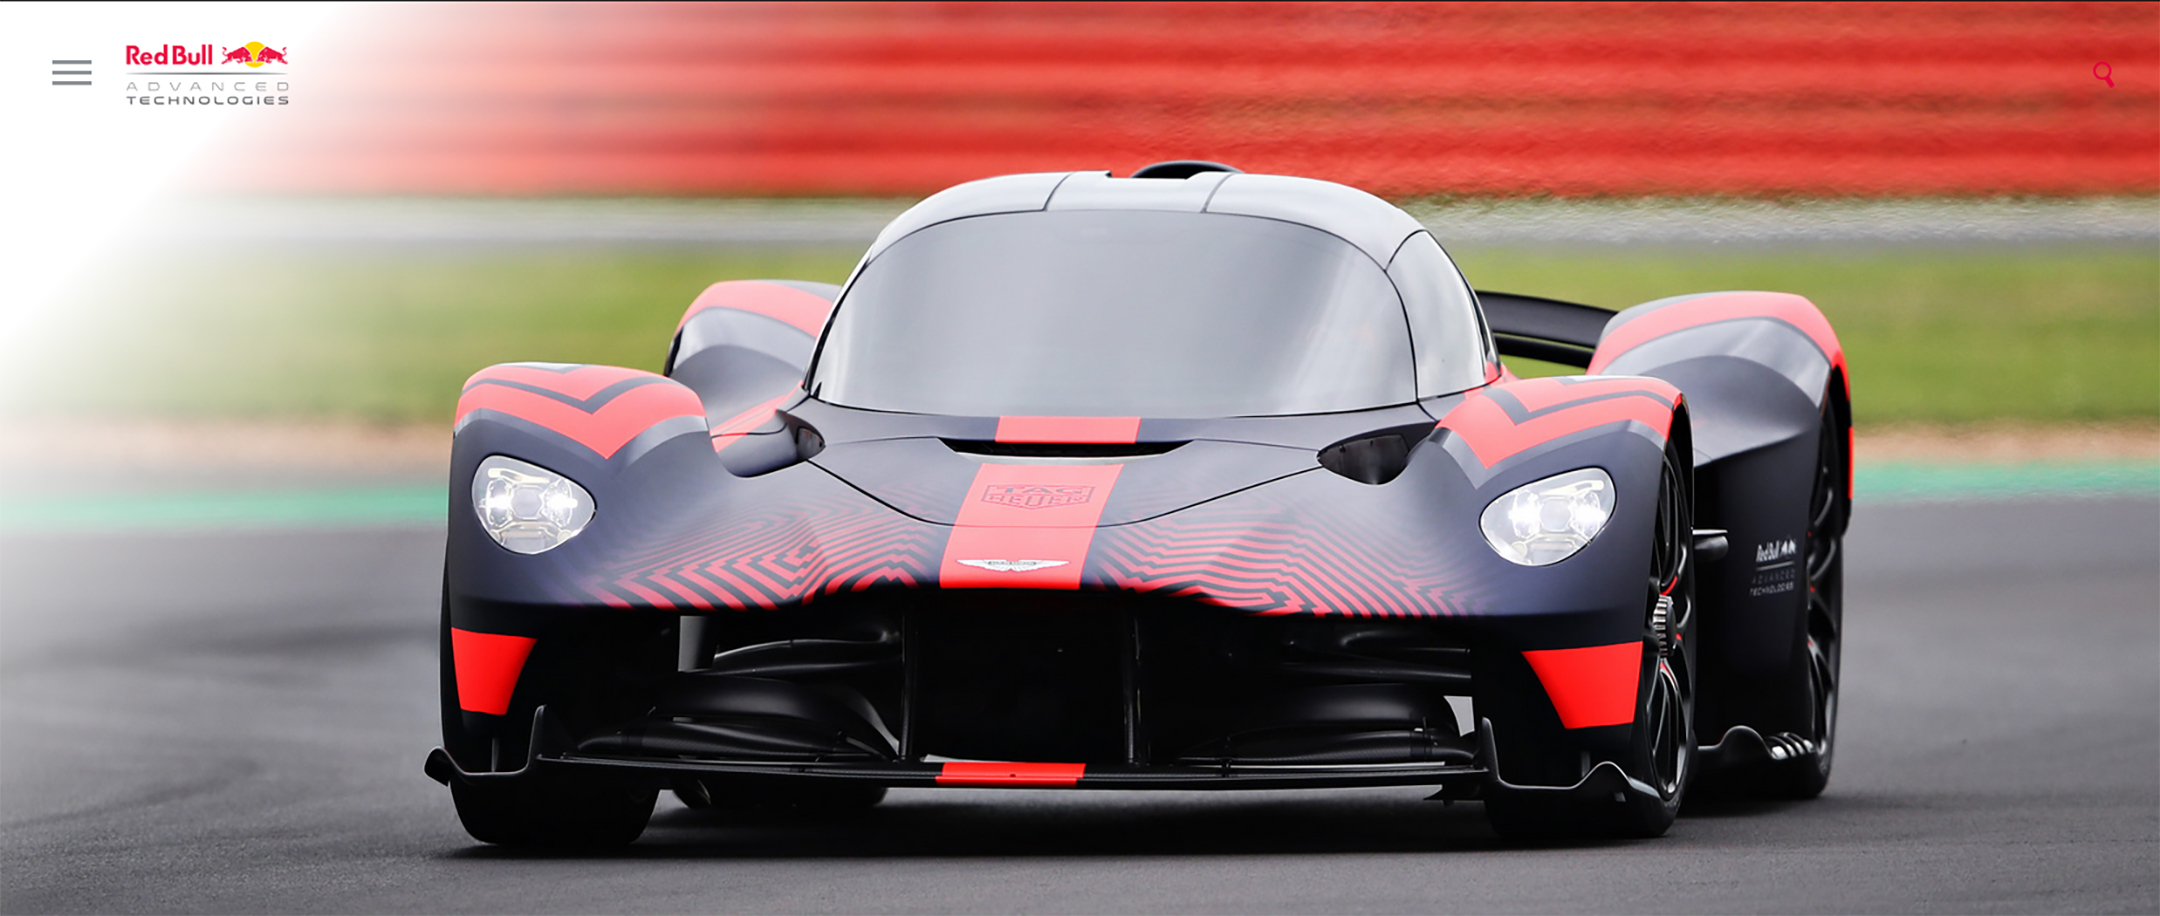 Red Bull Advanced Technologies - Aston Martin - 2020 - cover